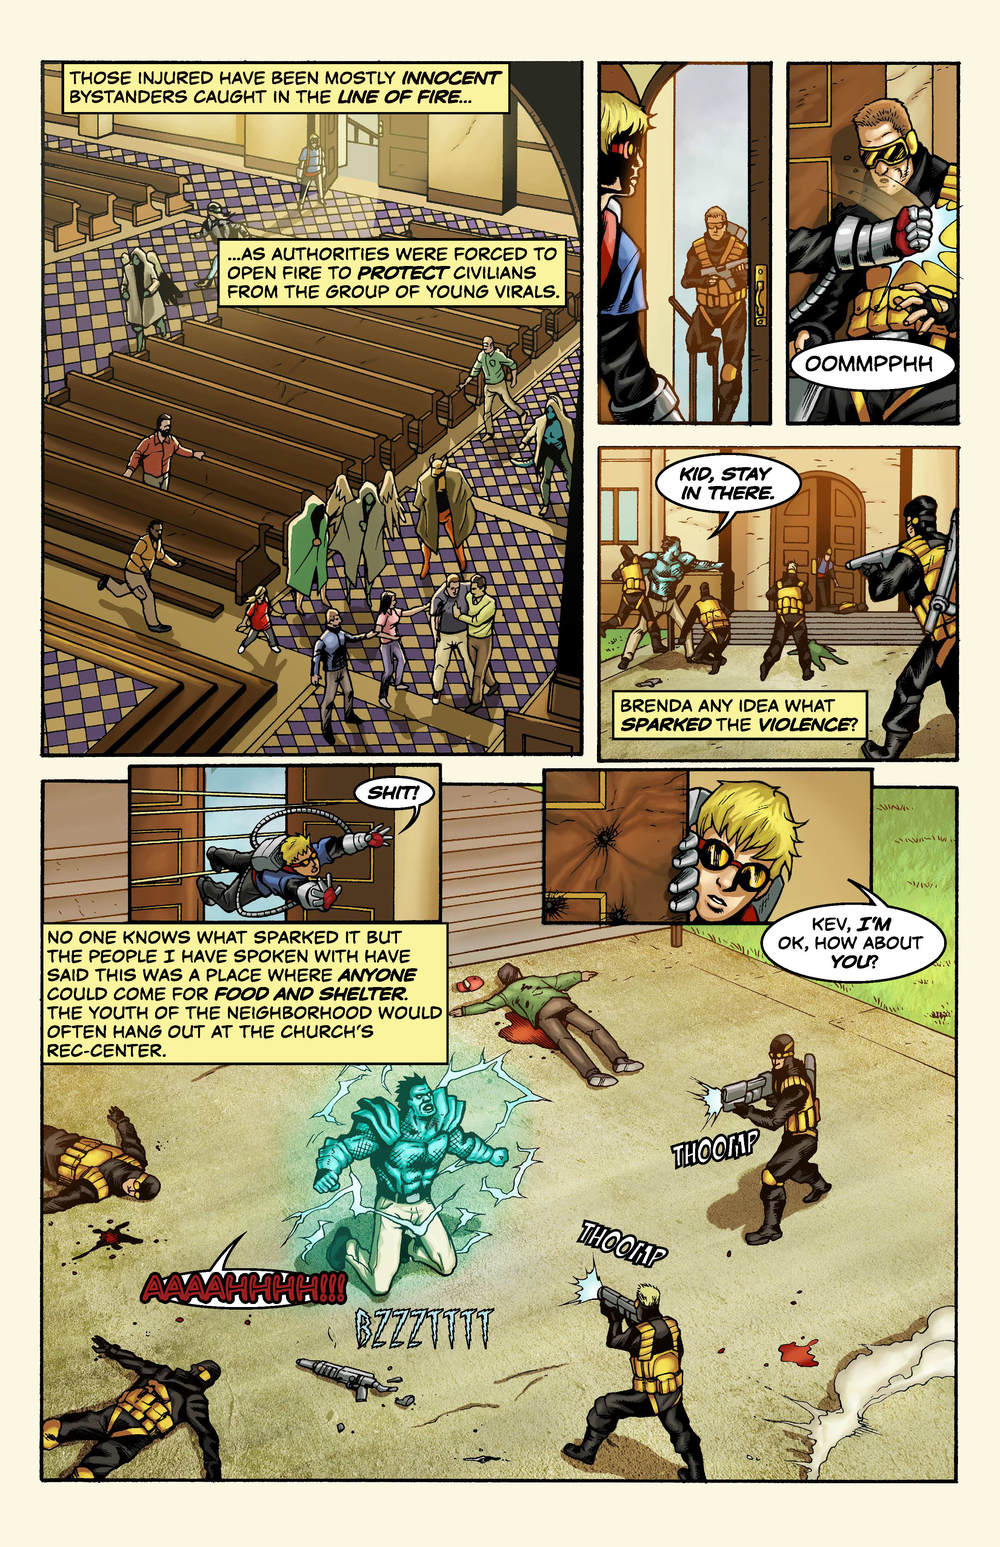 TT_Issue03_Digital_Page_31.jpg